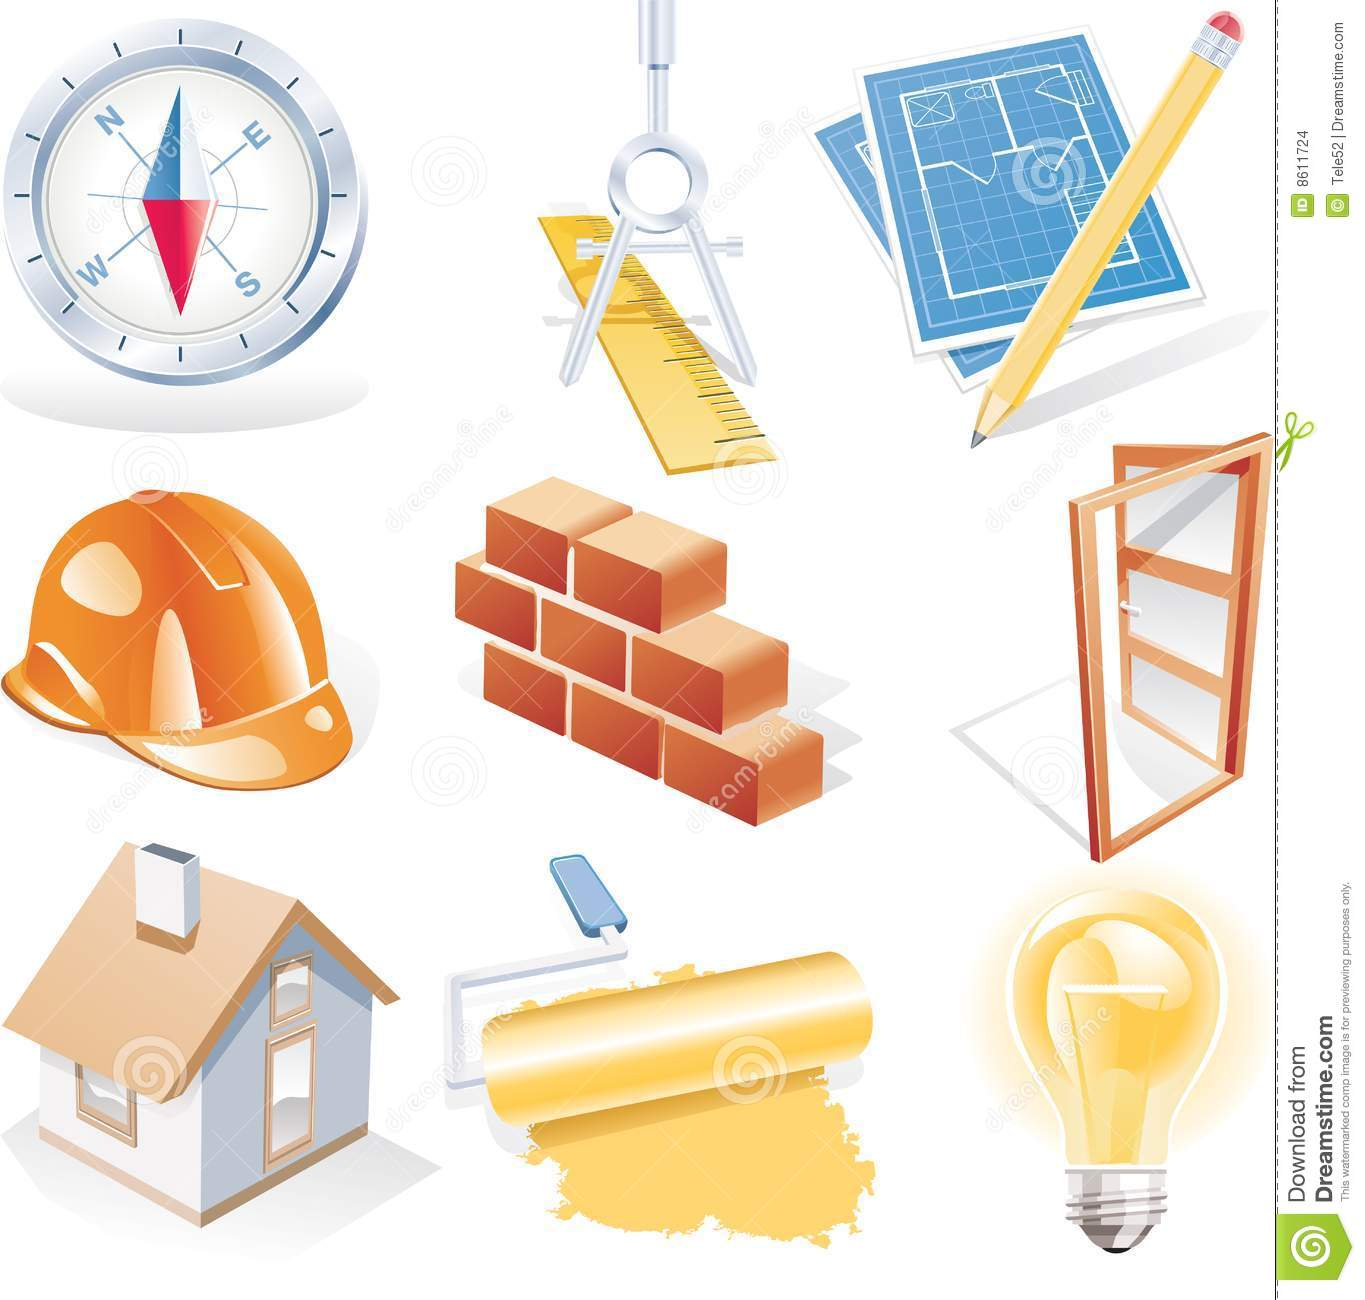 Vector architecture detailed icon set stock vector for Architecture icon